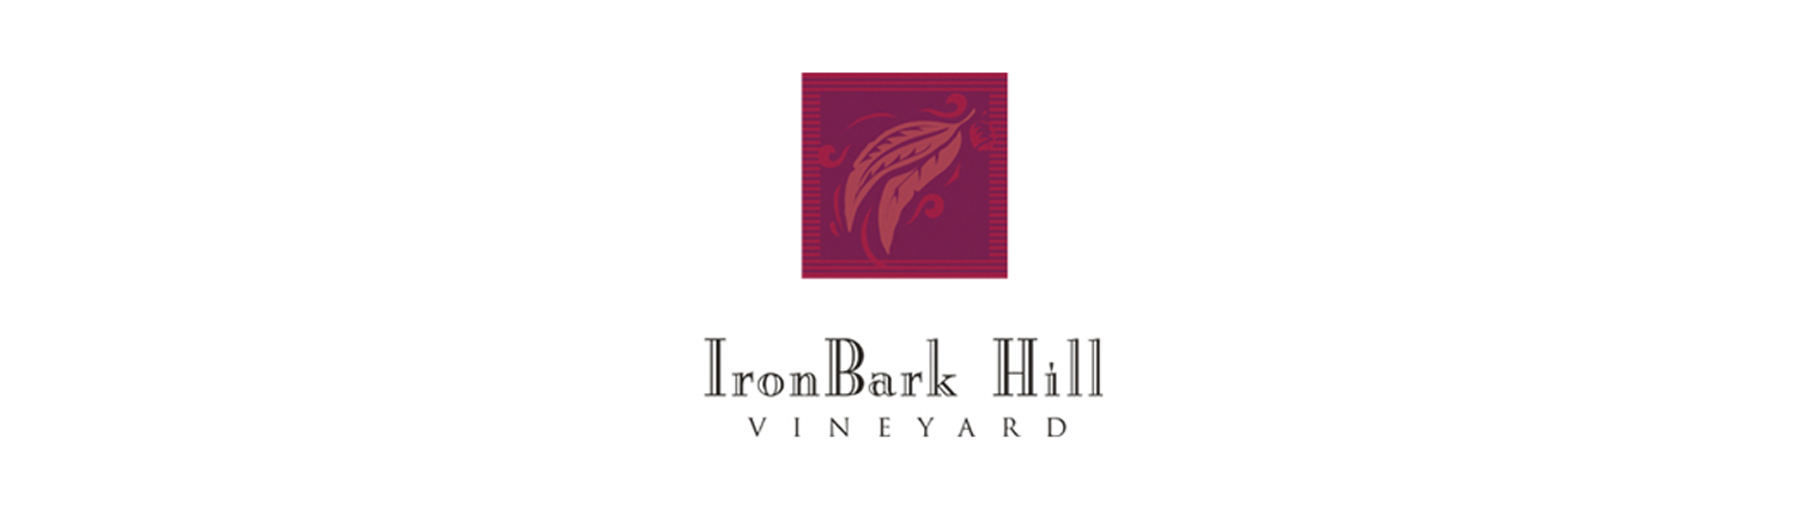 Ironbark Hill banner on white background